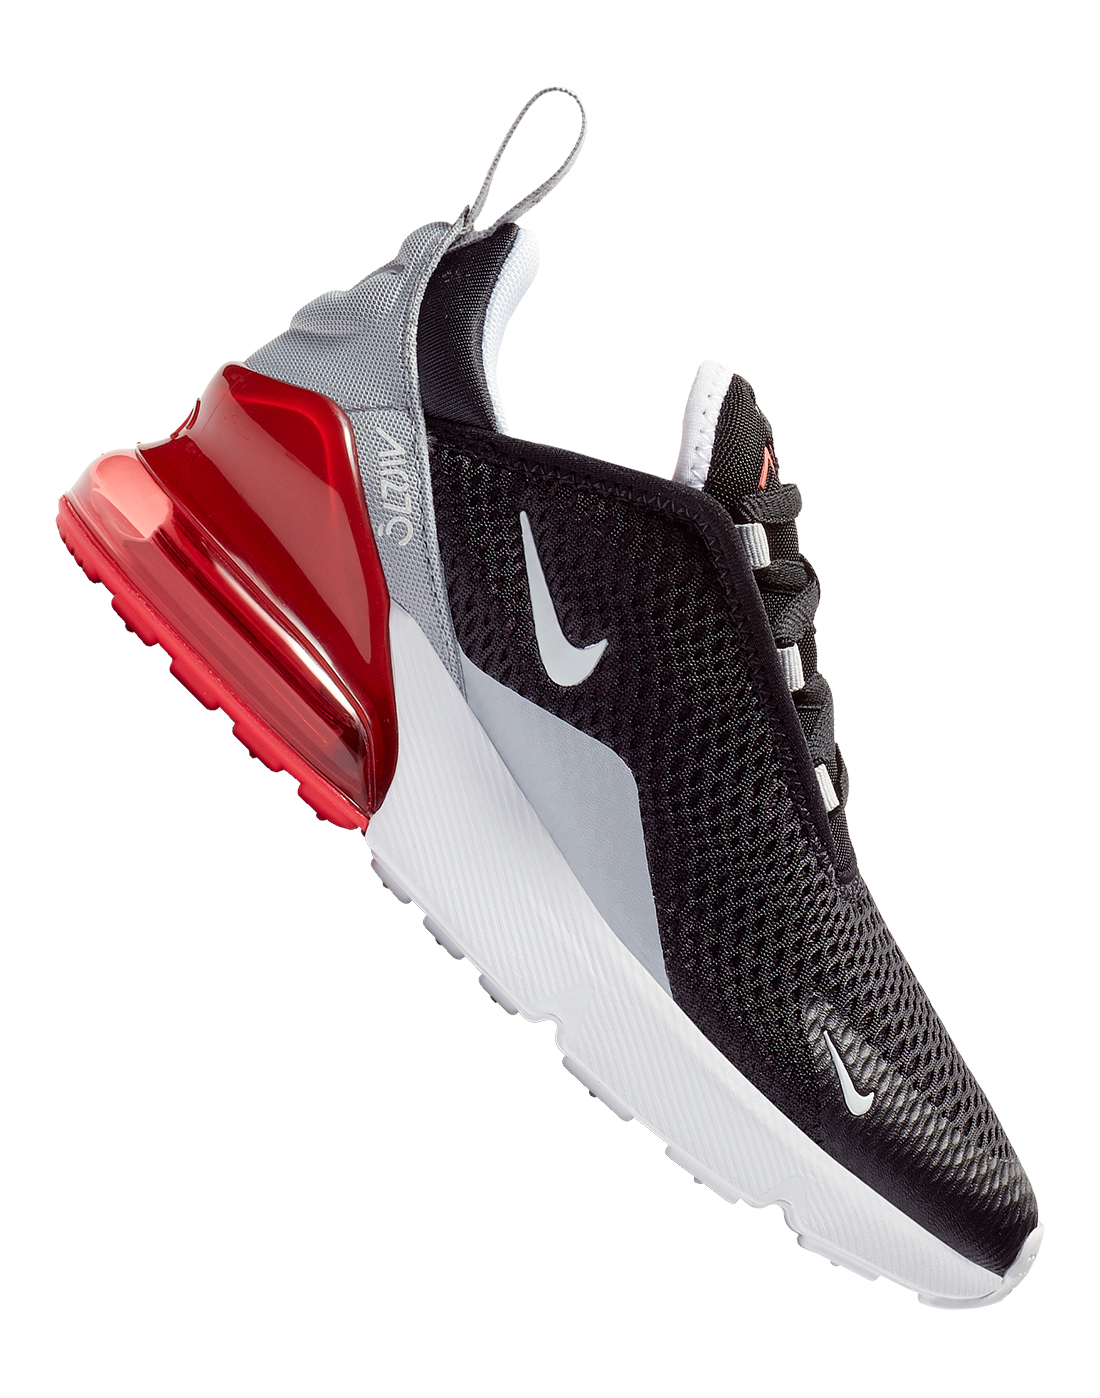 80f3f8edc1 Young Kid's Black & Red Nike Air Max 270 | Life Style Sports